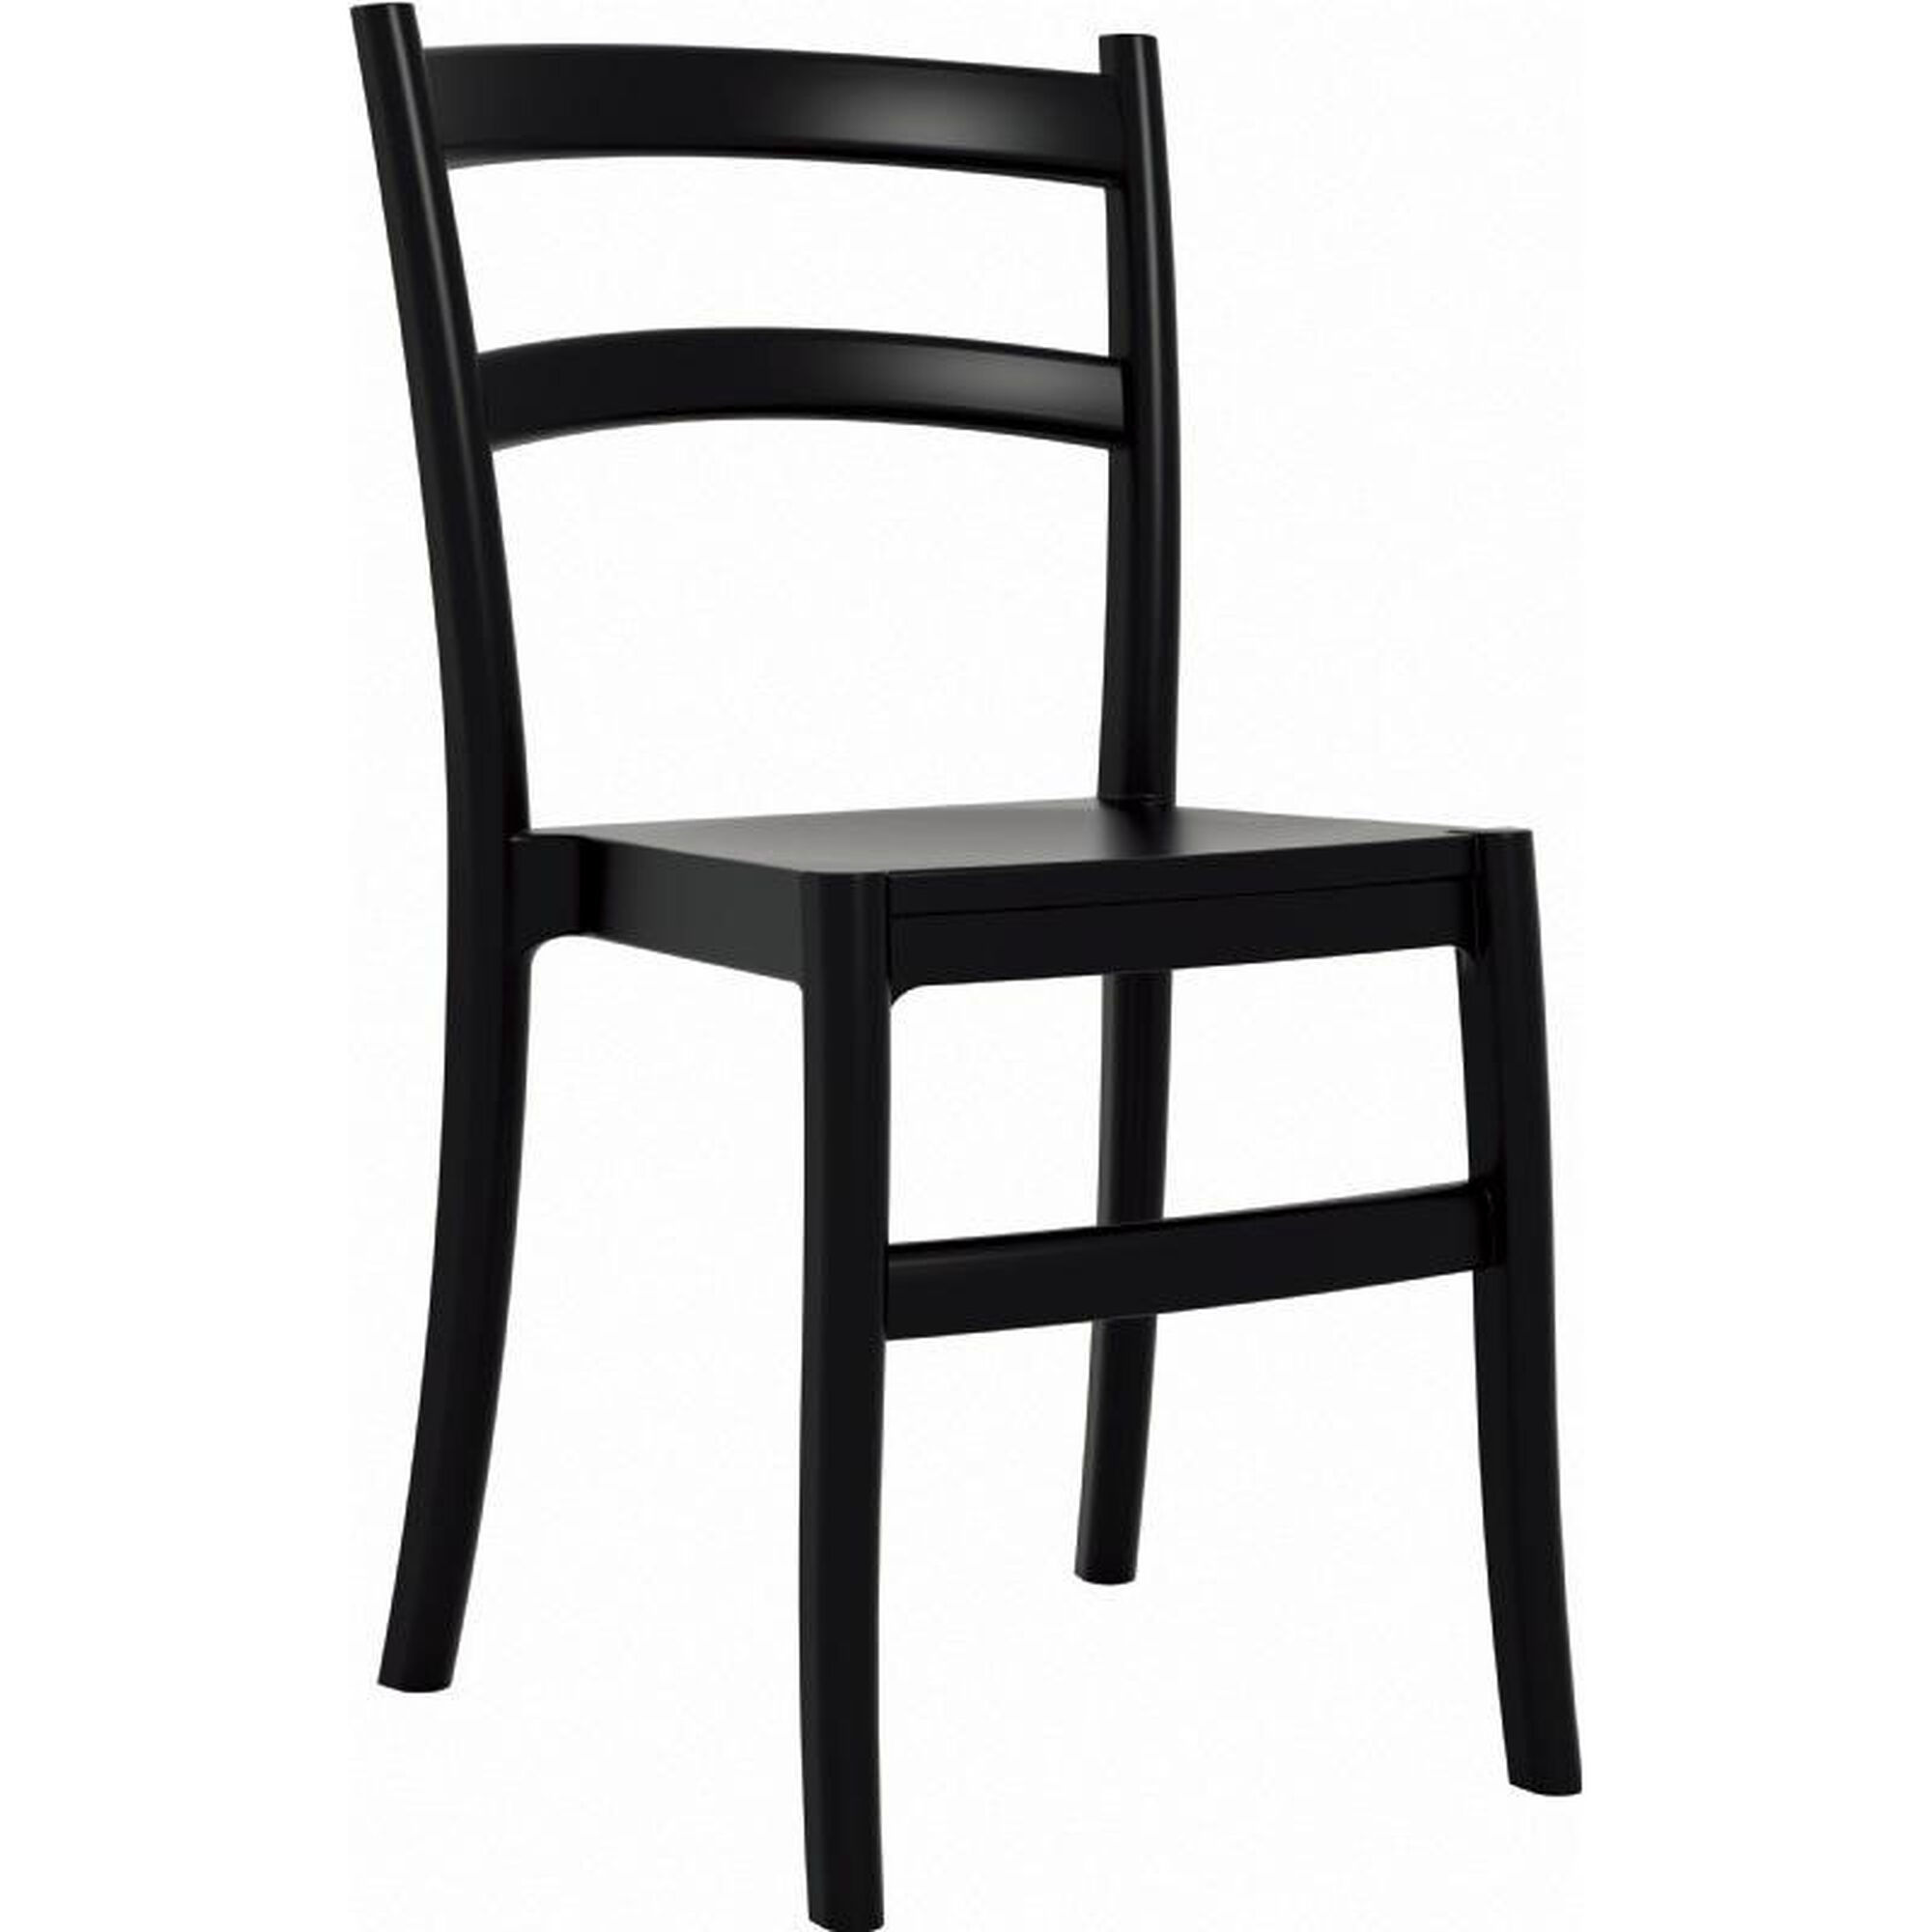 Swell Tiffany Outdoor Resin Cafe Style Stackable Dining Chair Black Ncnpc Chair Design For Home Ncnpcorg